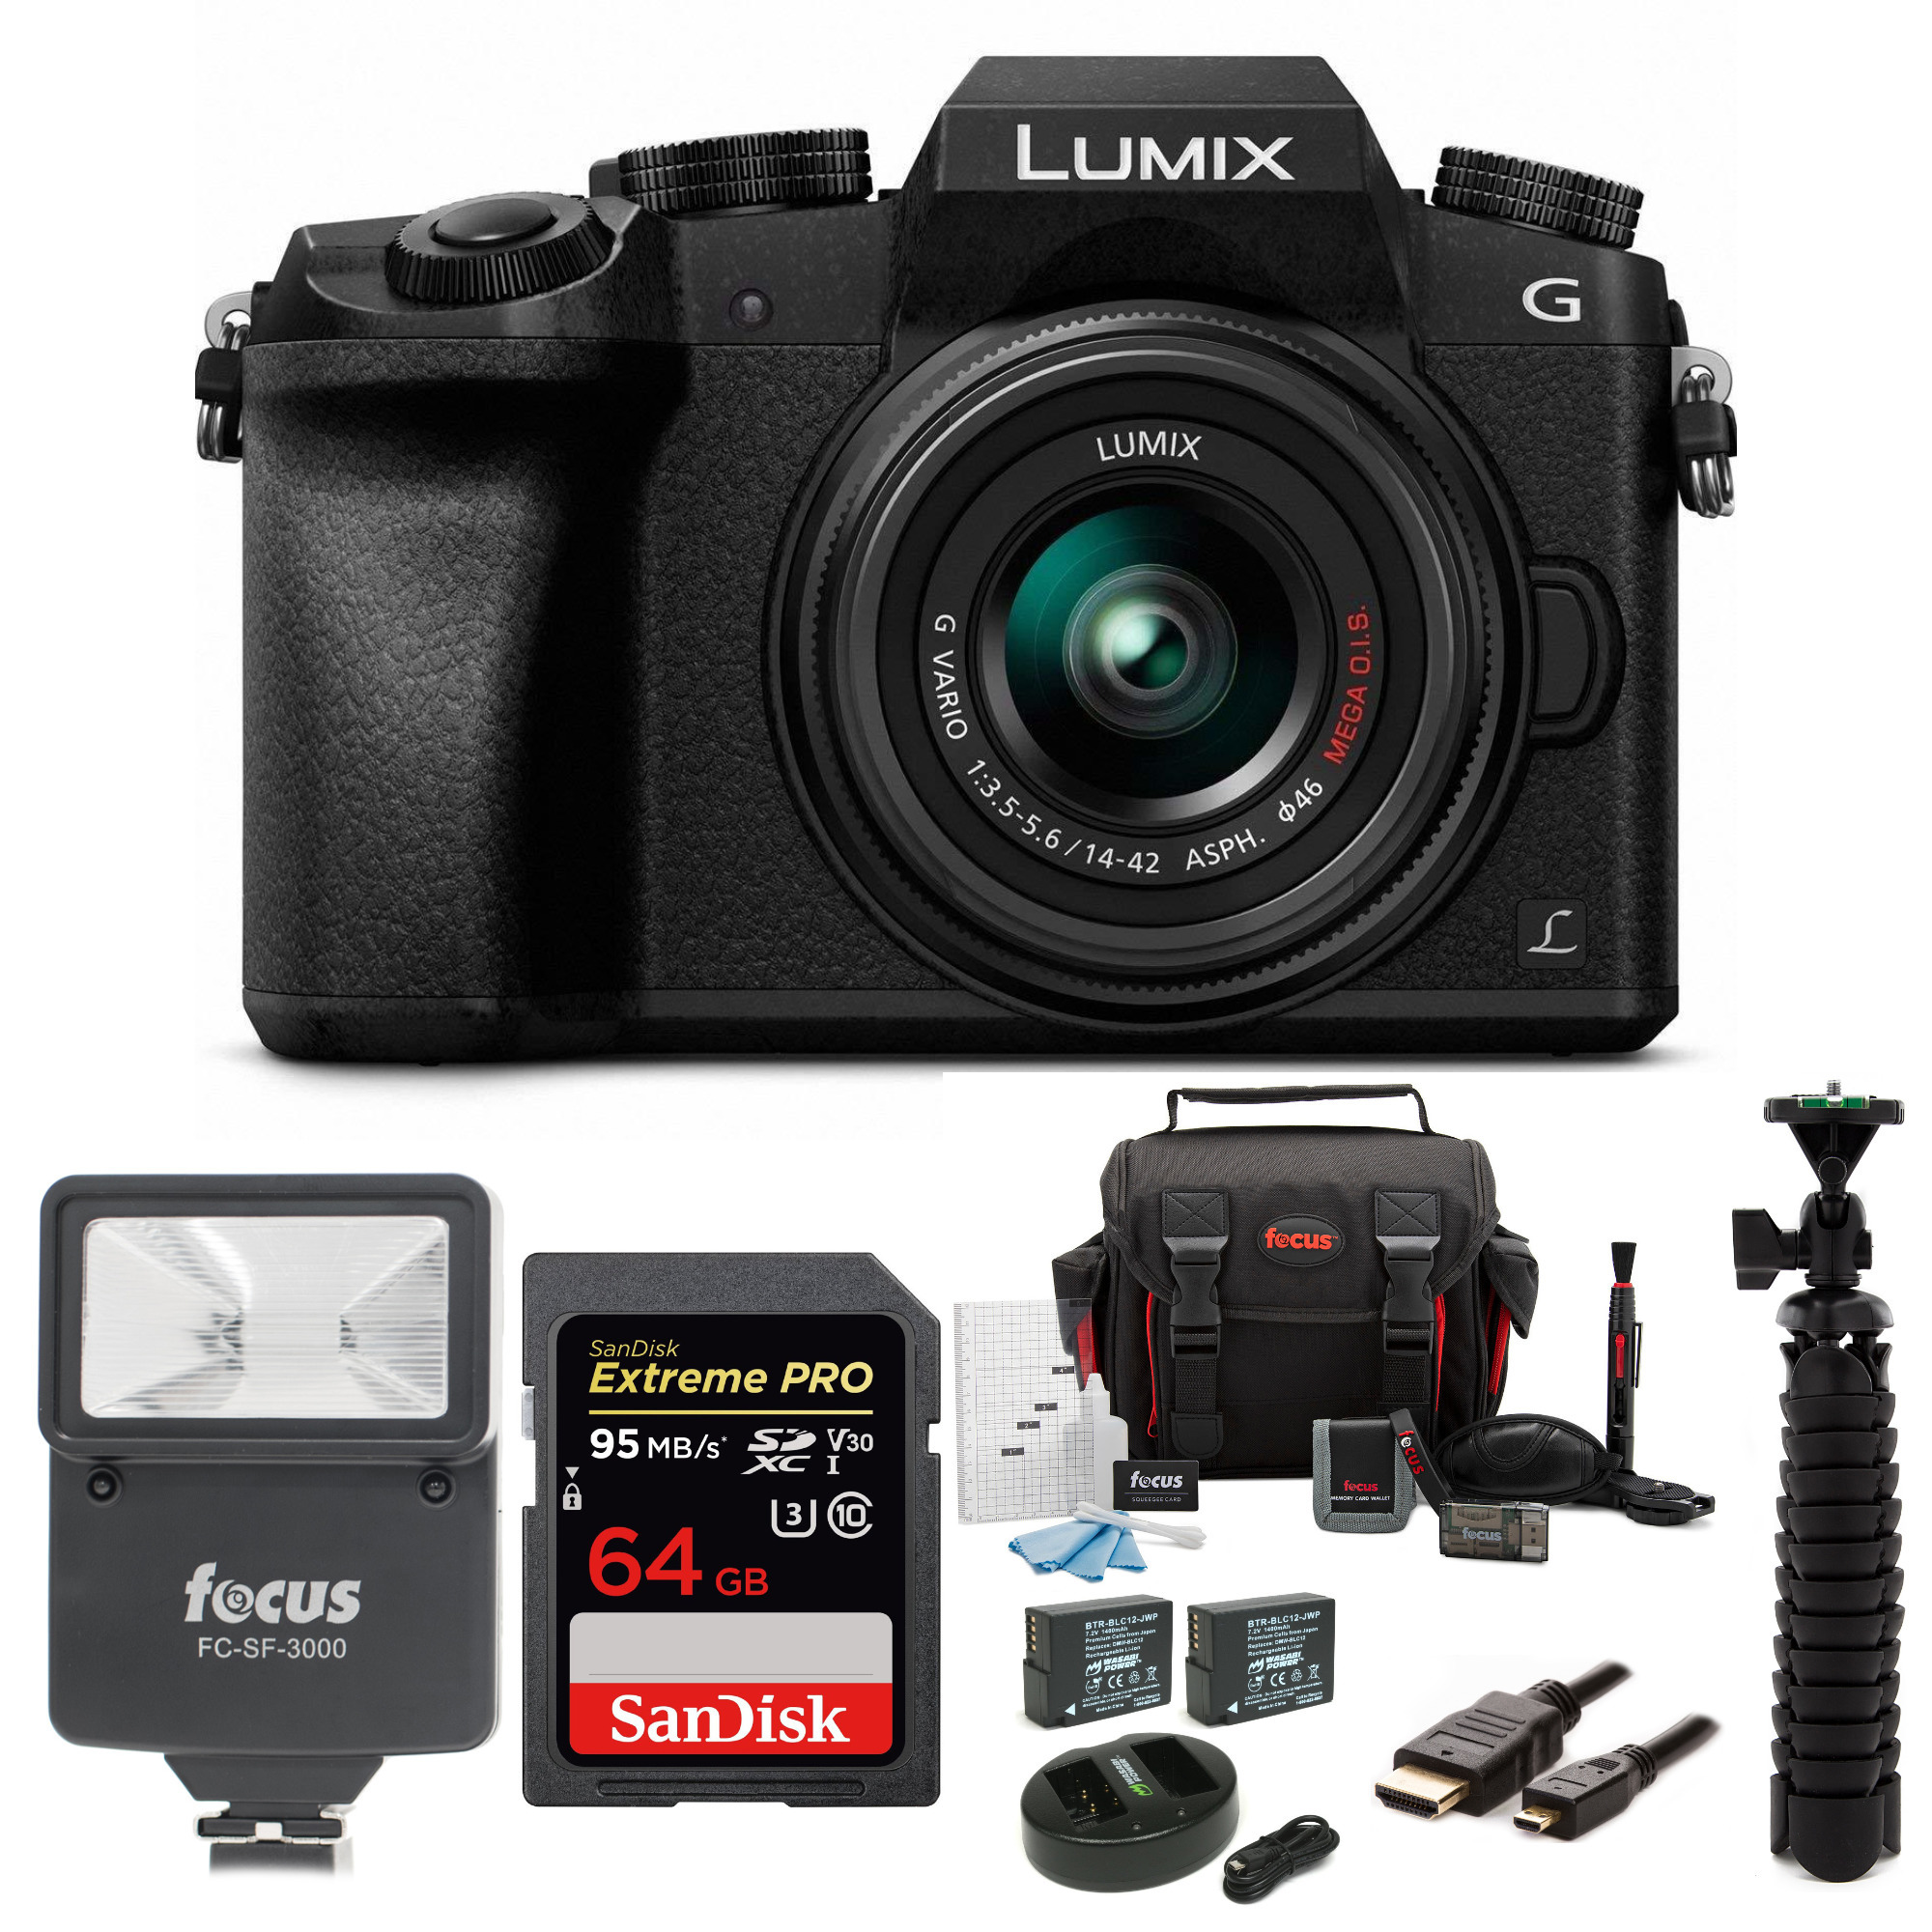 Panasonic LUMIX G7 Mirrorless Camera with 14-42mm Lens and 64 SD Card Bundle